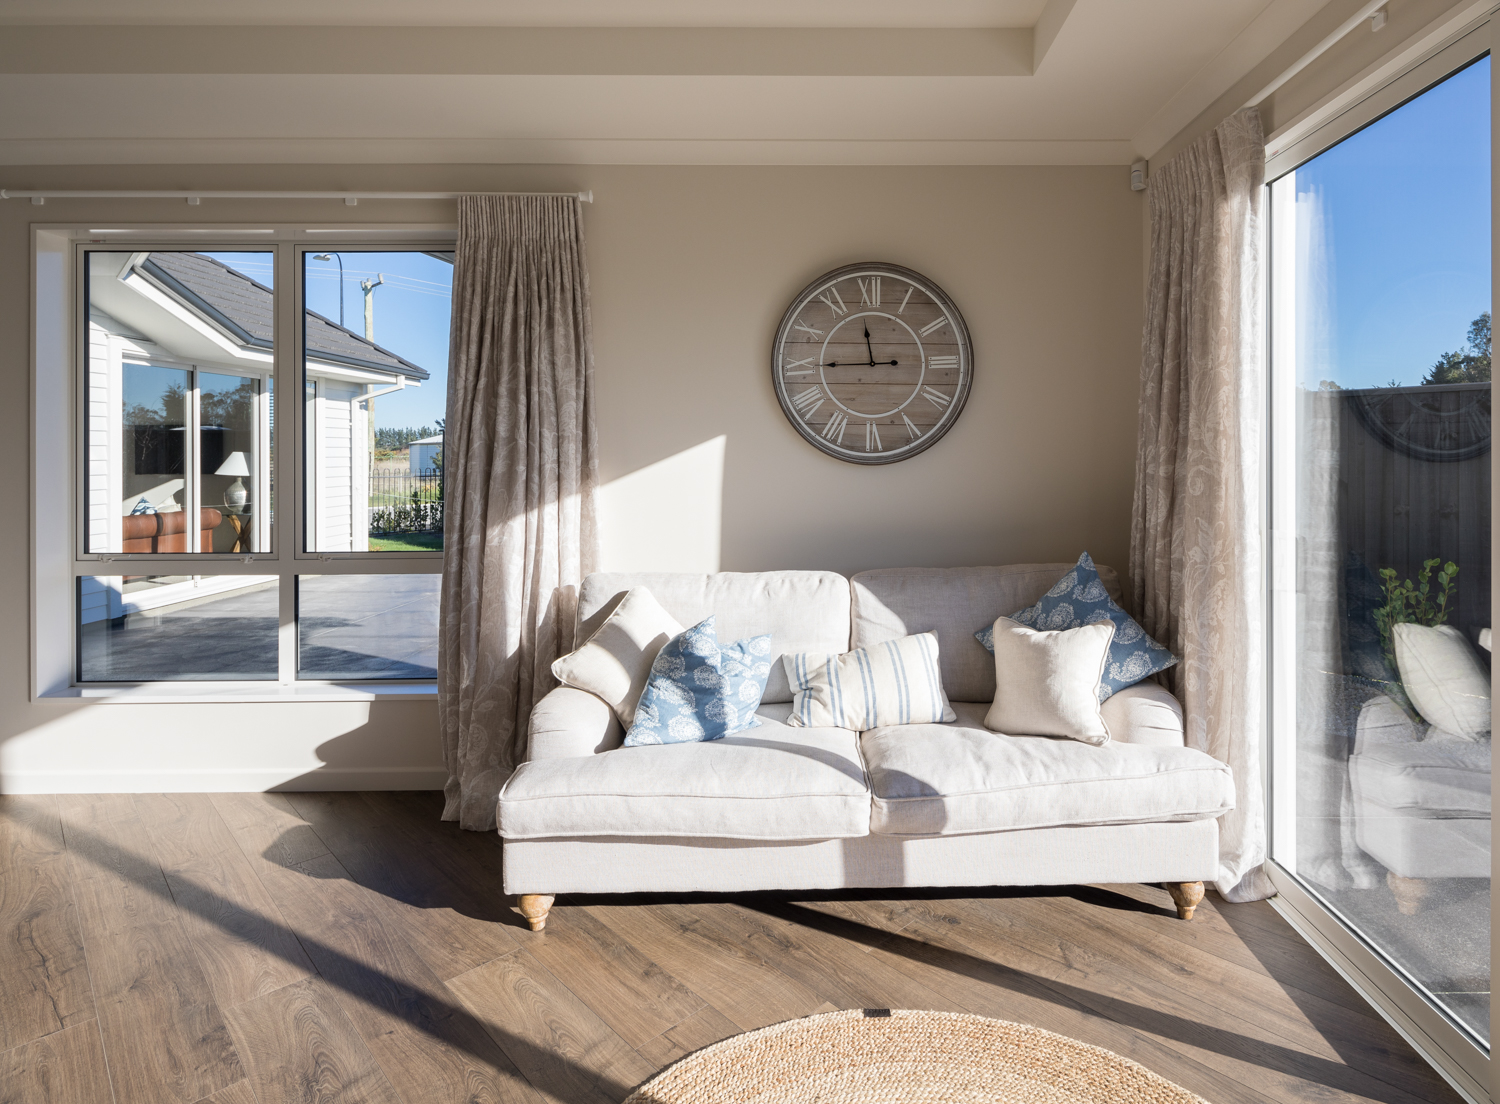 TH_Rolleston_Showhomes_005.jpg